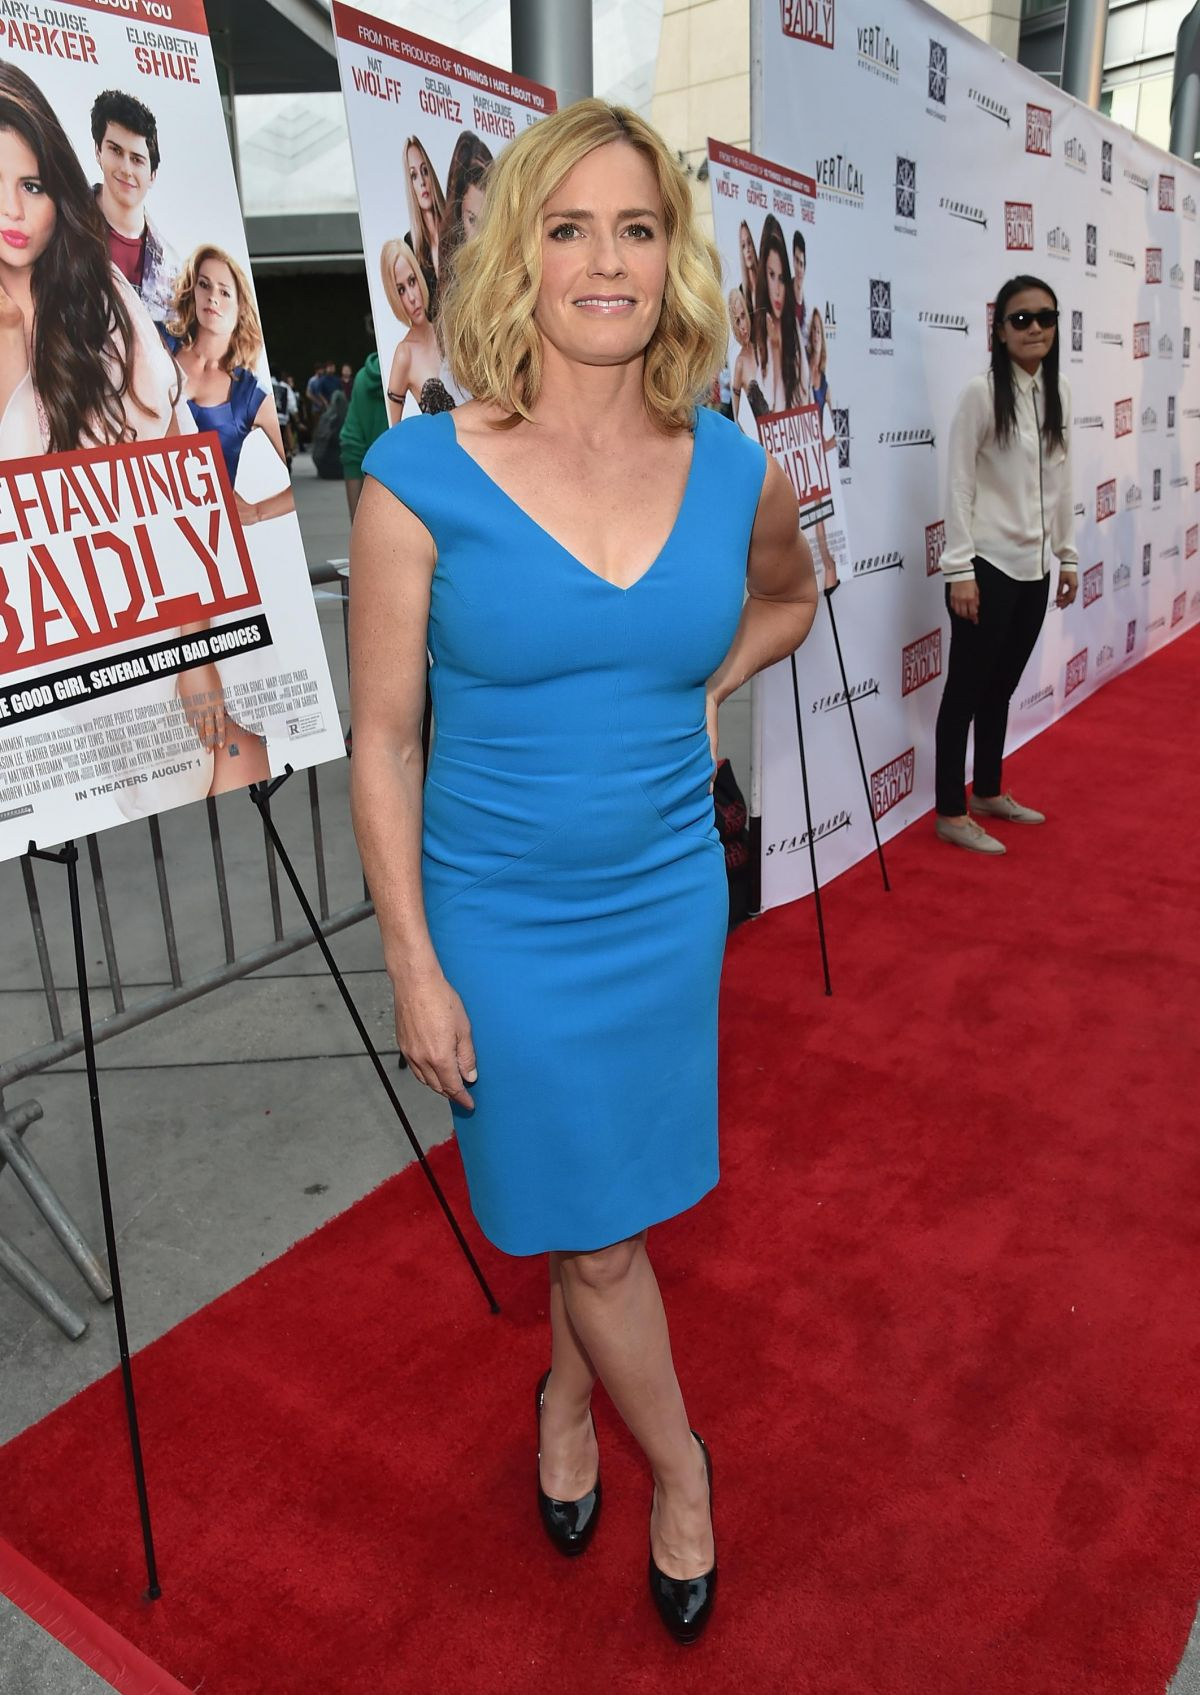 elisabeth-shue-at-behaving-badly-premiere-in-los-angeles_1